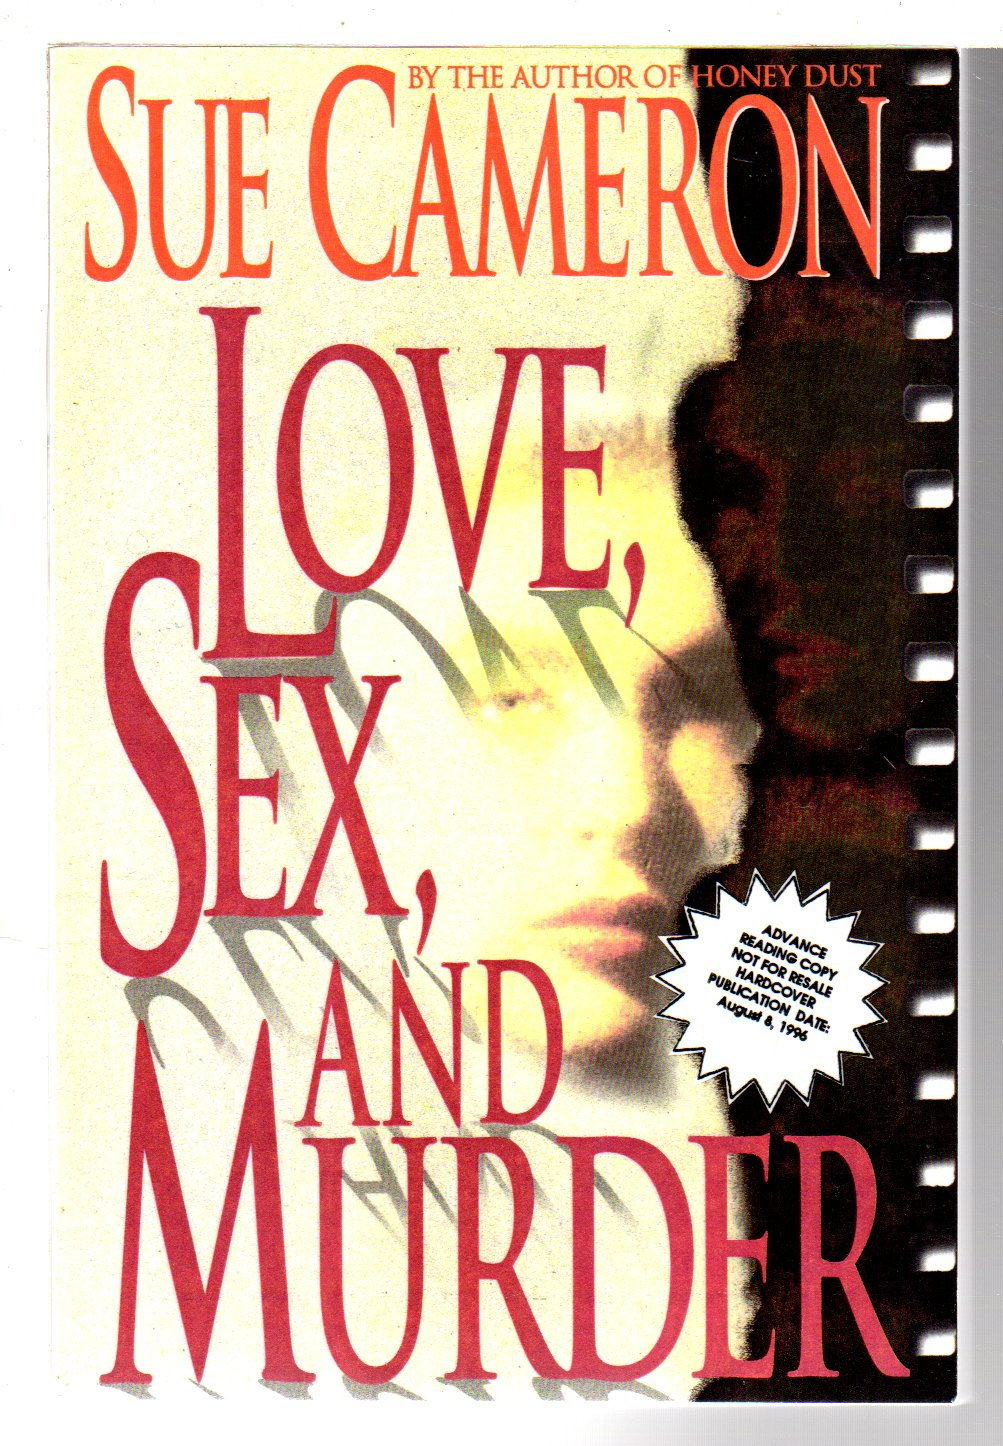 CAMERON, SUE - LOVE, SEX AND MURDER.